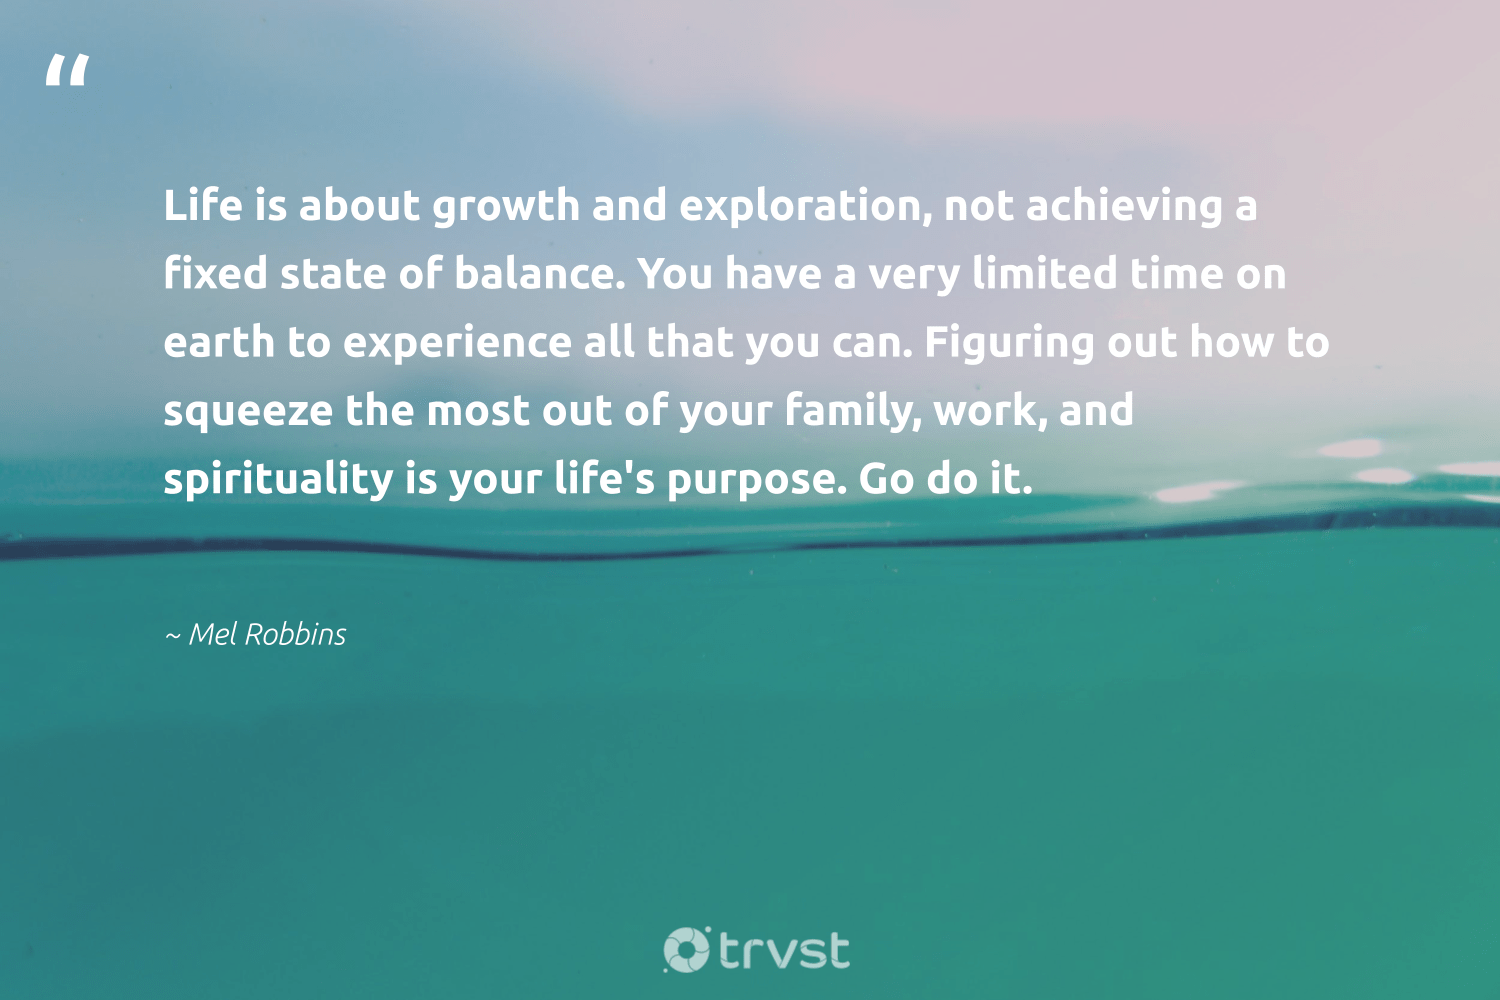 """""""Life is about growth and exploration, not achieving a fixed state of balance. You have a very limited time on earth to experience all that you can. Figuring out how to squeeze the most out of your family, work, and spirituality is your life's purpose. Go do it.""""  - Mel Robbins #trvst #quotes #earth #family #spirituality #purpose #balance #mothernature #nevergiveup #gogreen #thinkgreen #environment"""